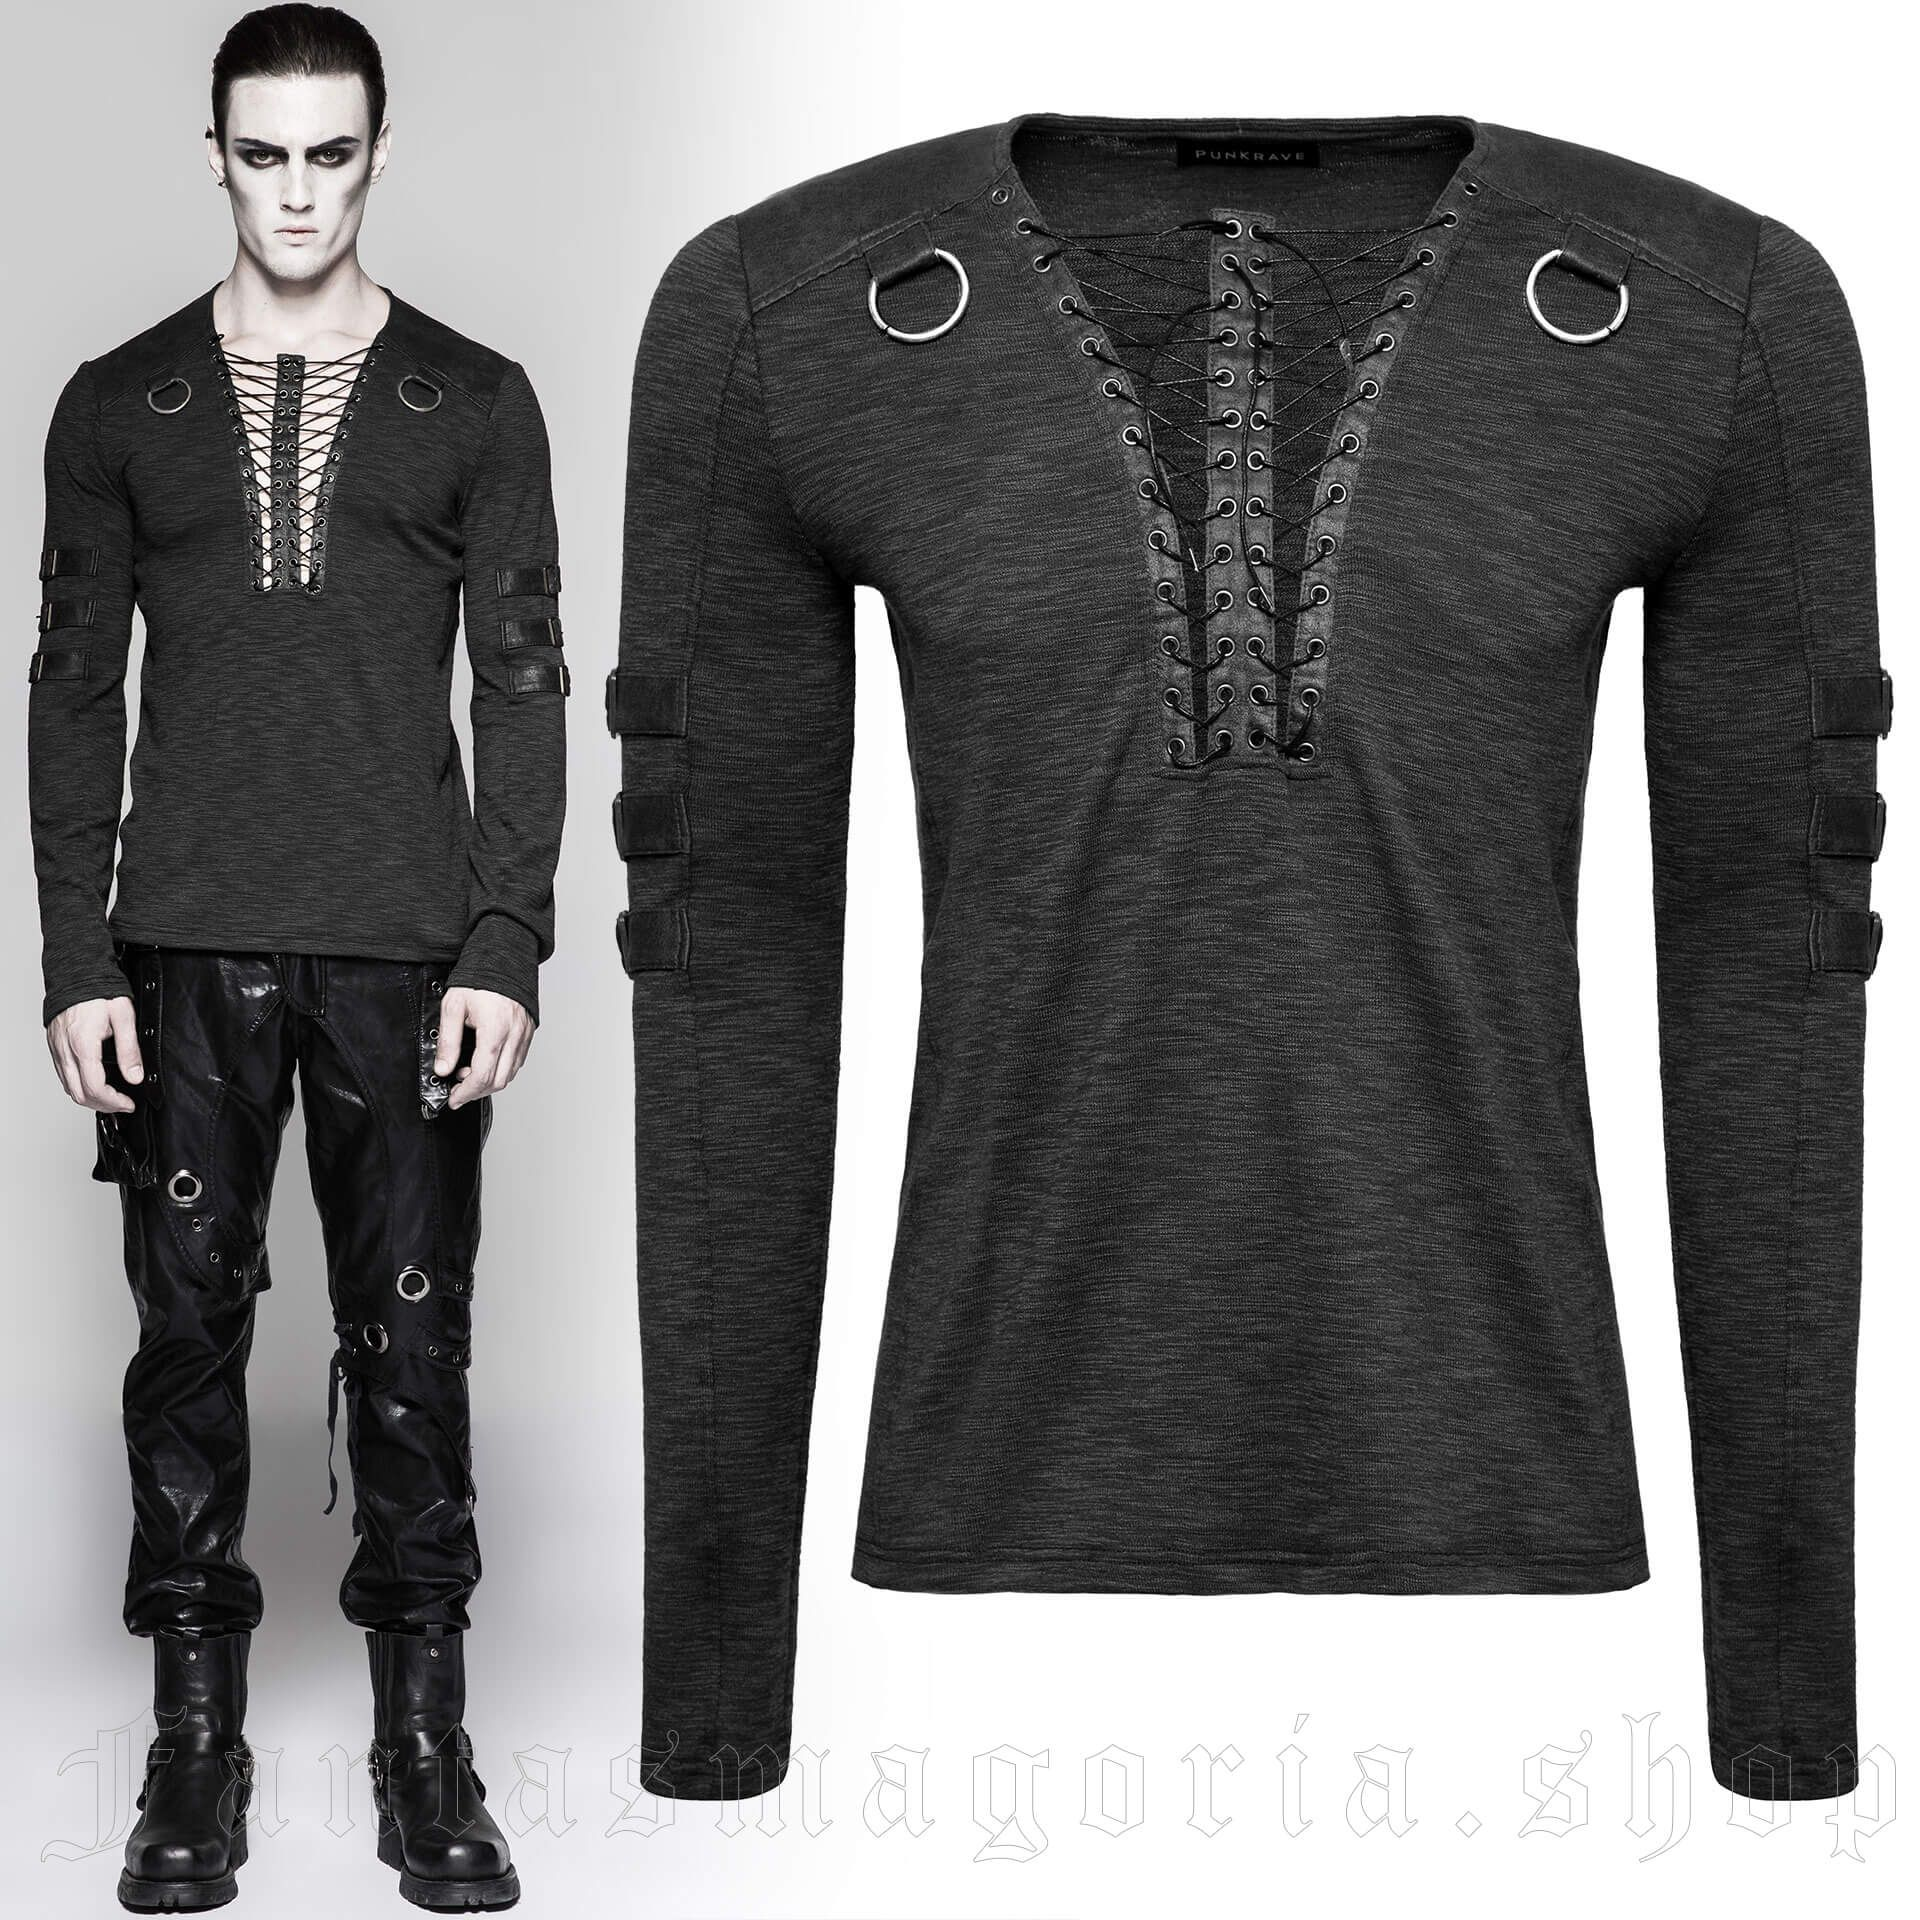 men's Viserion Longsleeve Top by PUNK RAVE brand, code: T-462